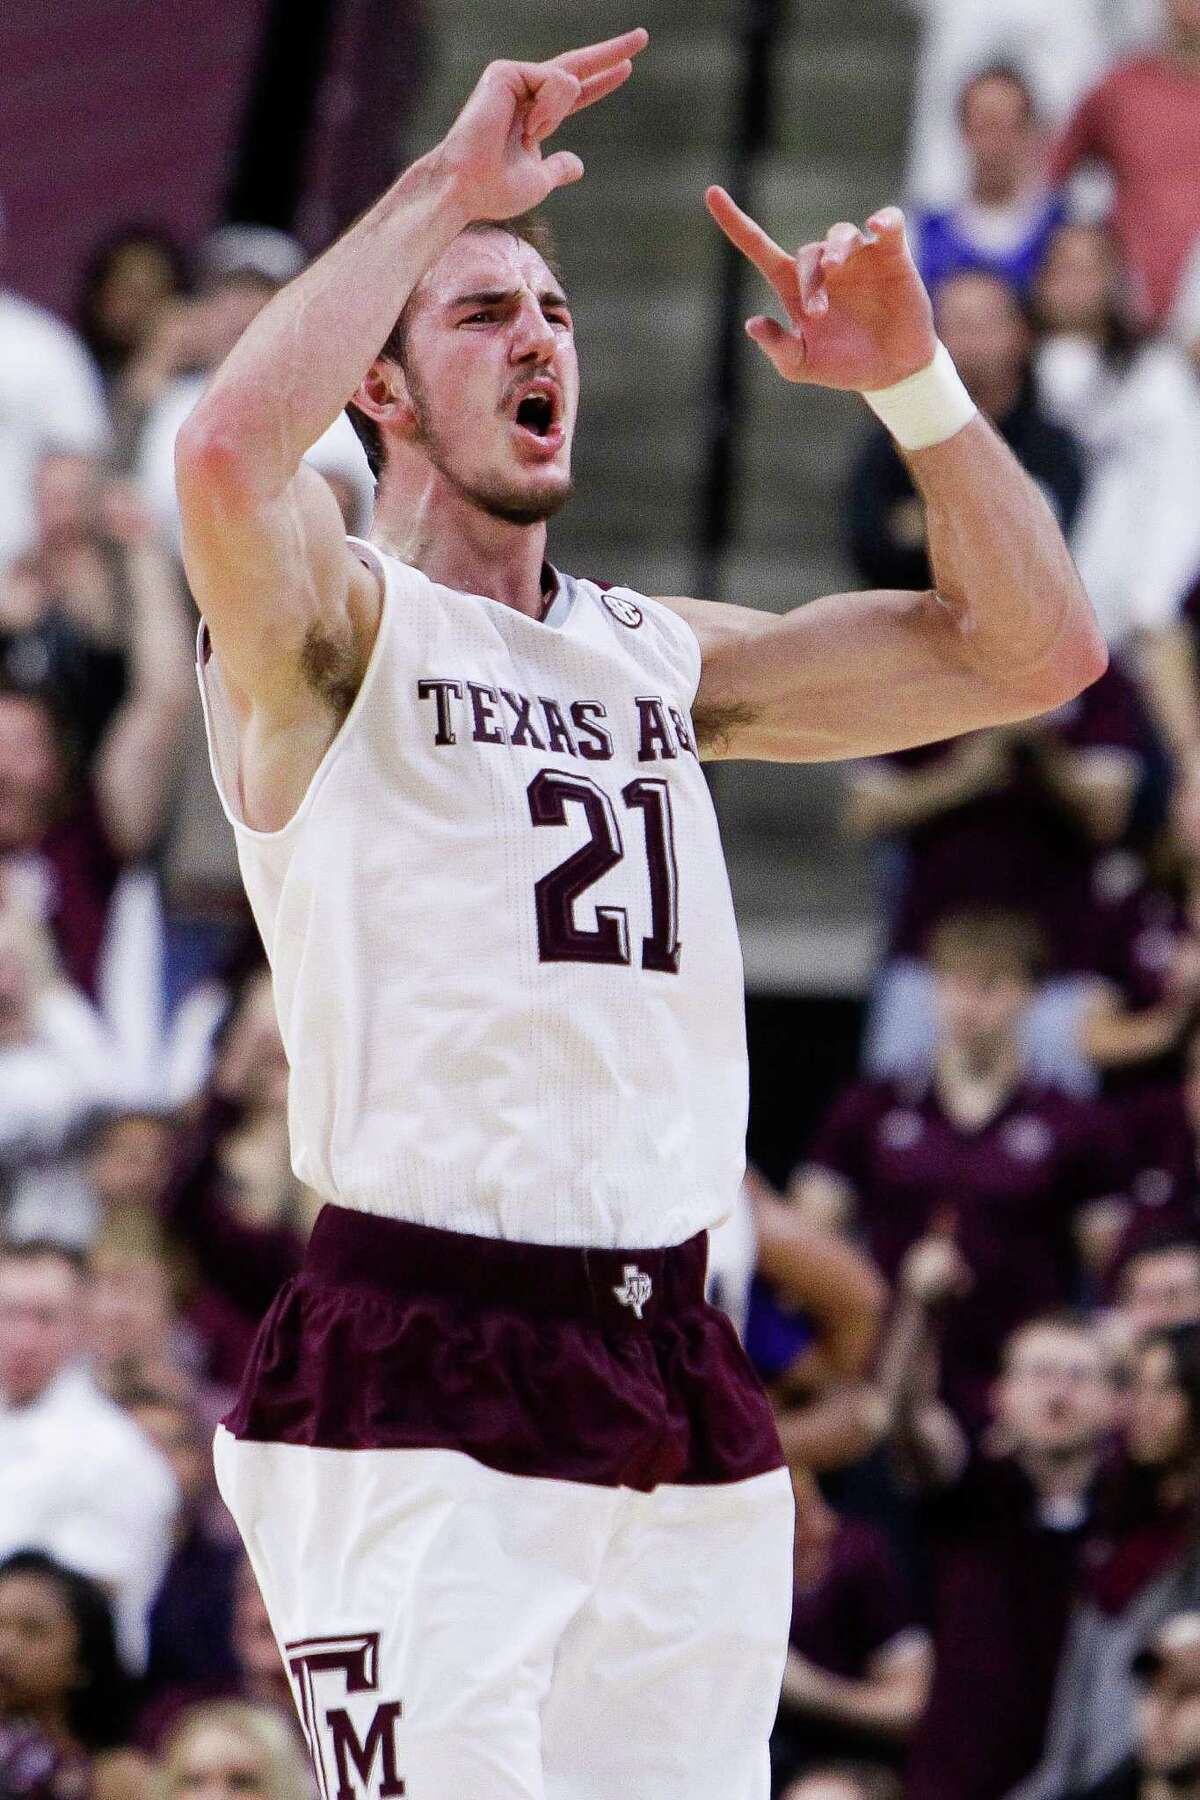 Texas A&M Aggies guard Alex Caruso (21) pumps up the crowd as LSU takes a timeout as Texas A&M takes on LSU Tuesday, Jan. 19, 2016, in College Station.